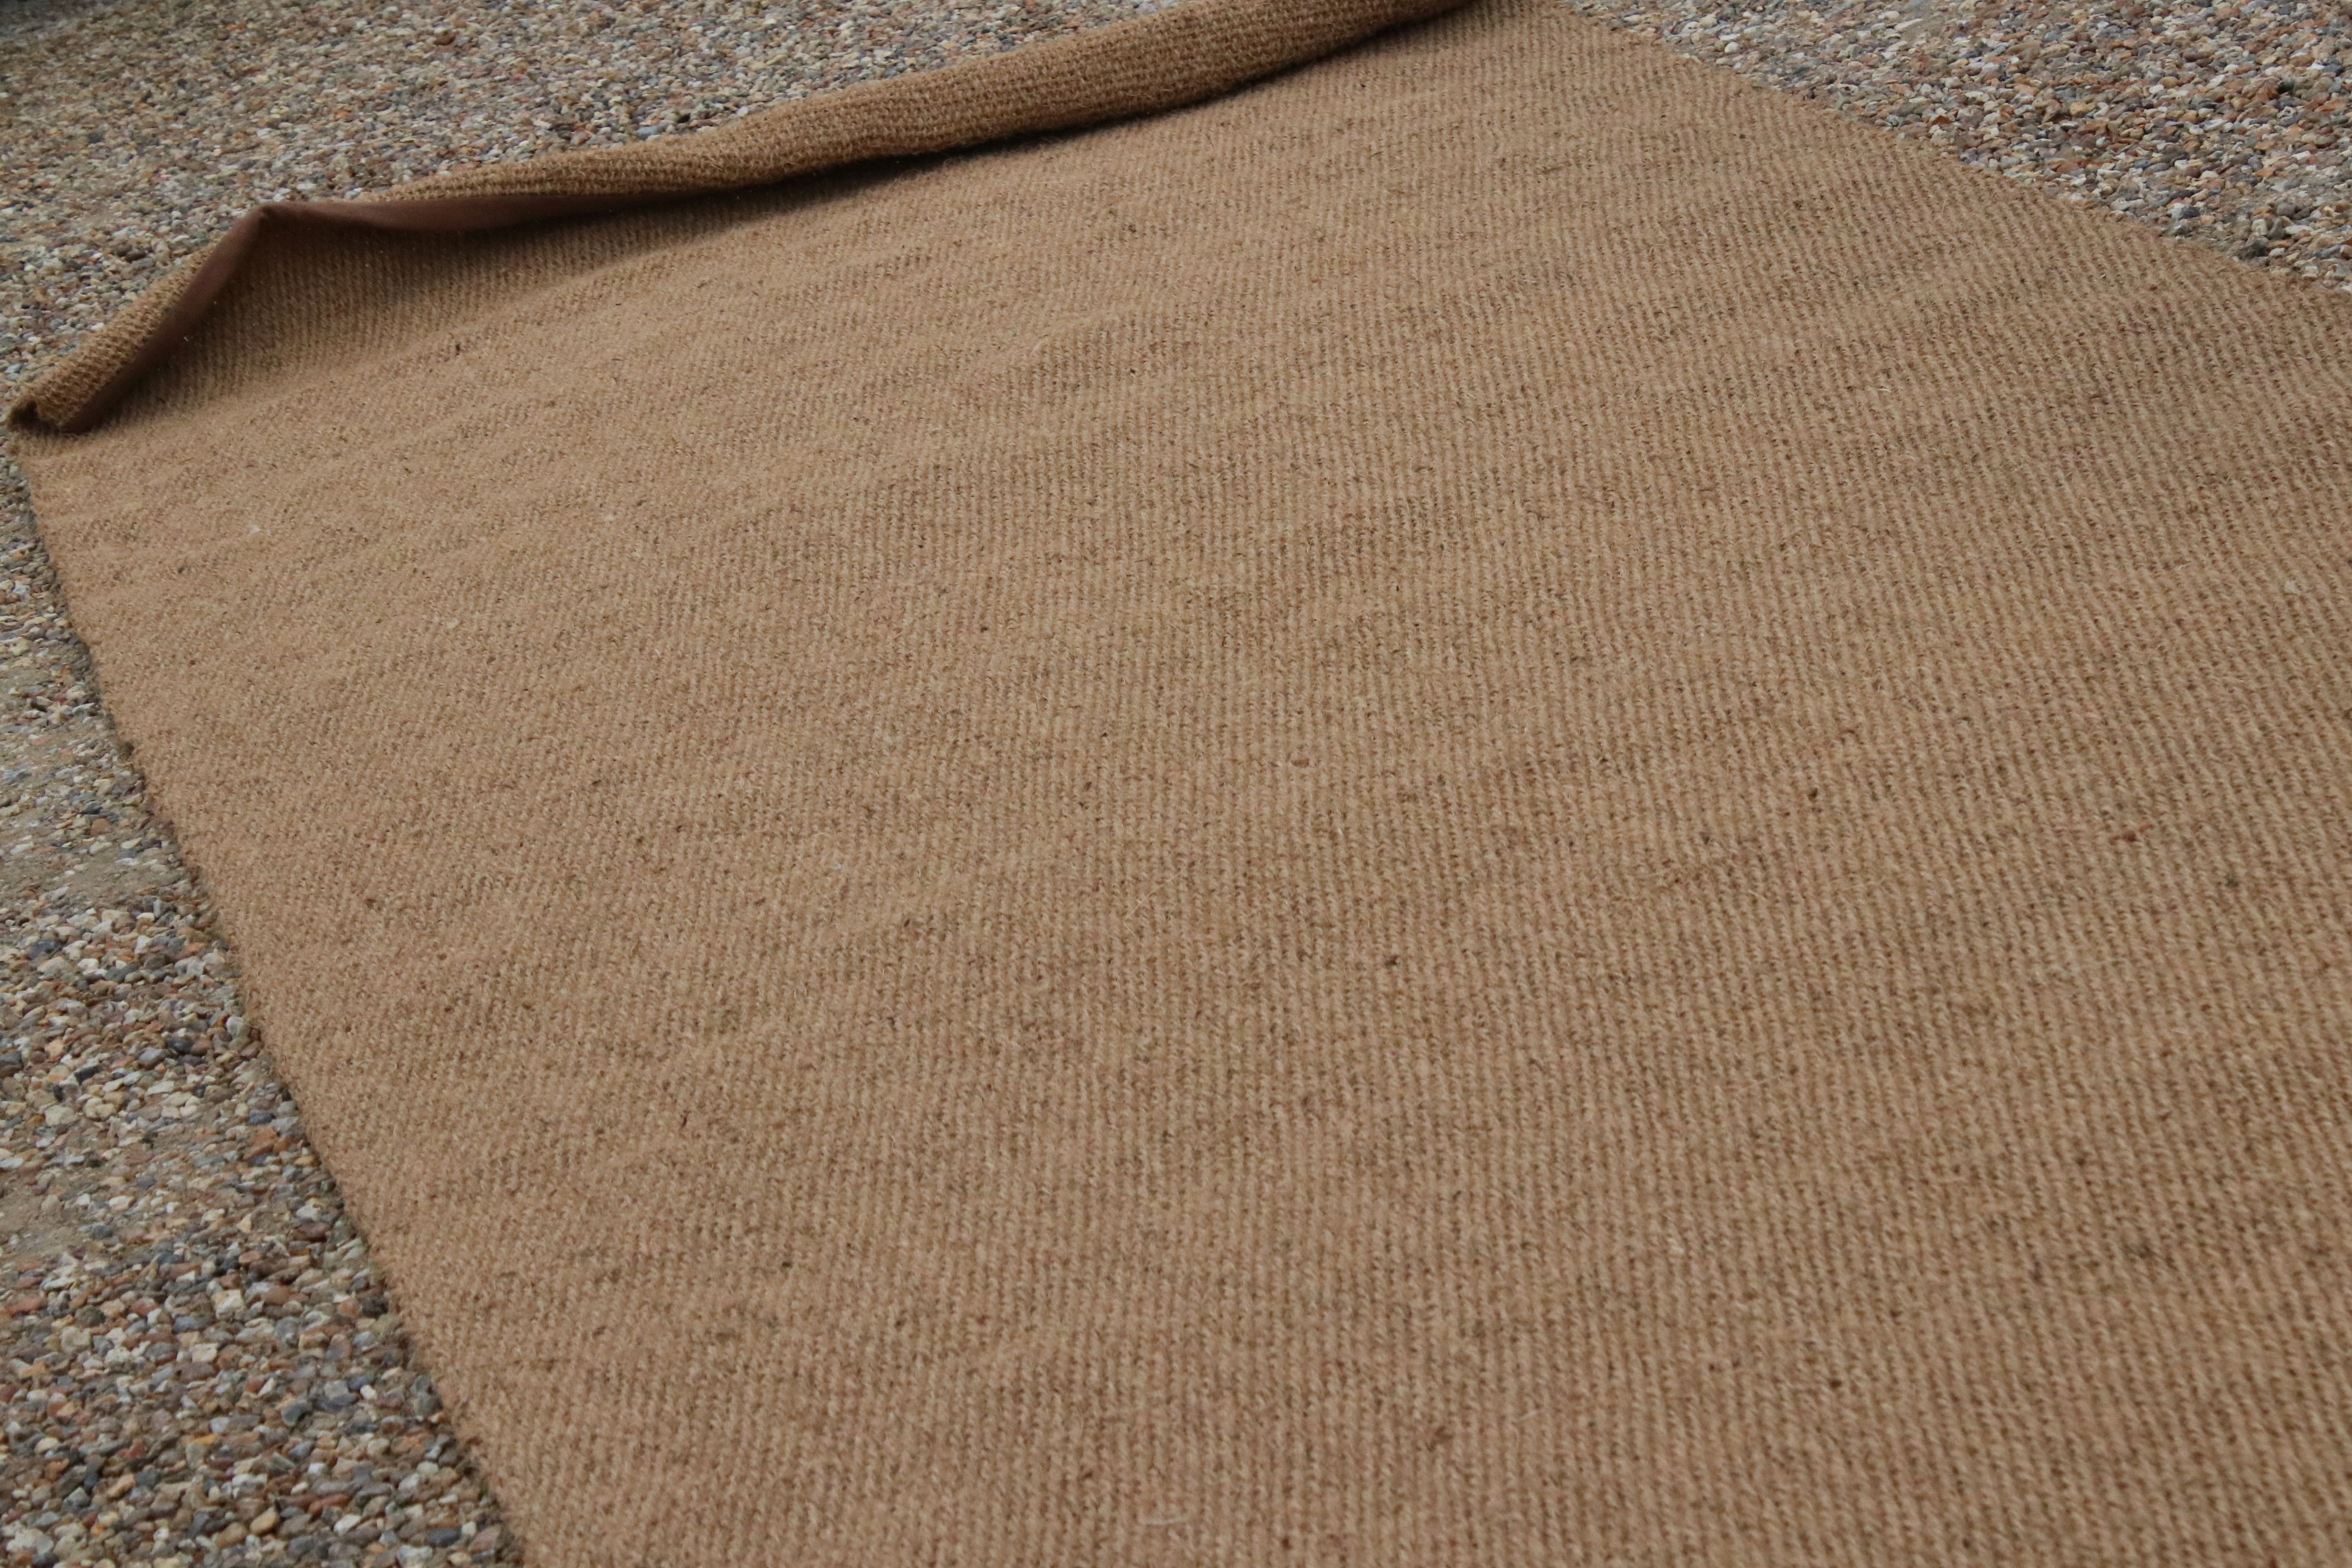 Large coconut mat runner, approx. 20' x 6' (unused) - Image 3 of 3